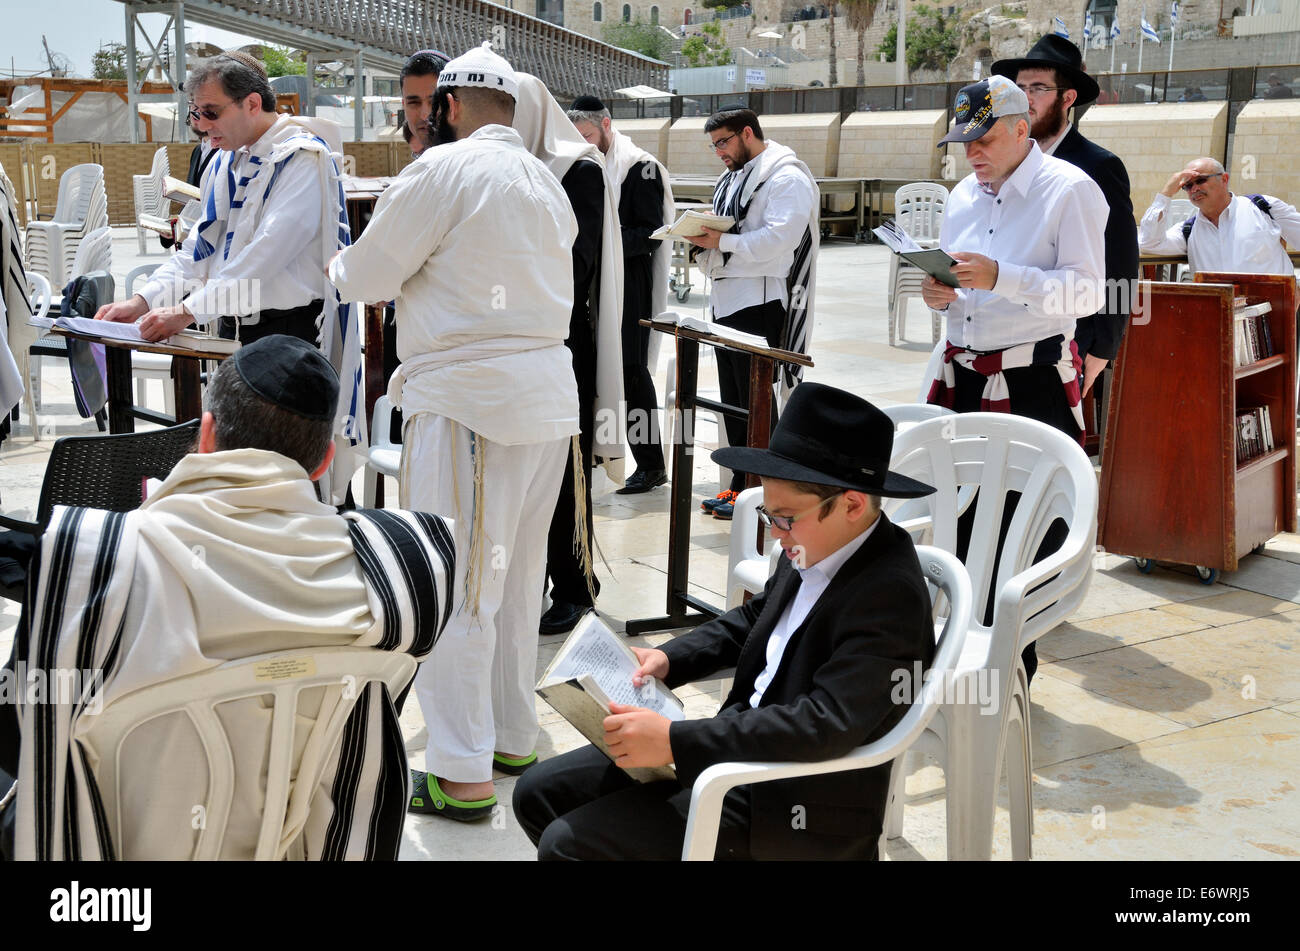 Jews read Torah sitting at the Wailing Wall in the courtyard of the Jews Temple in Old City of Jerusalem, Israel - Stock Image